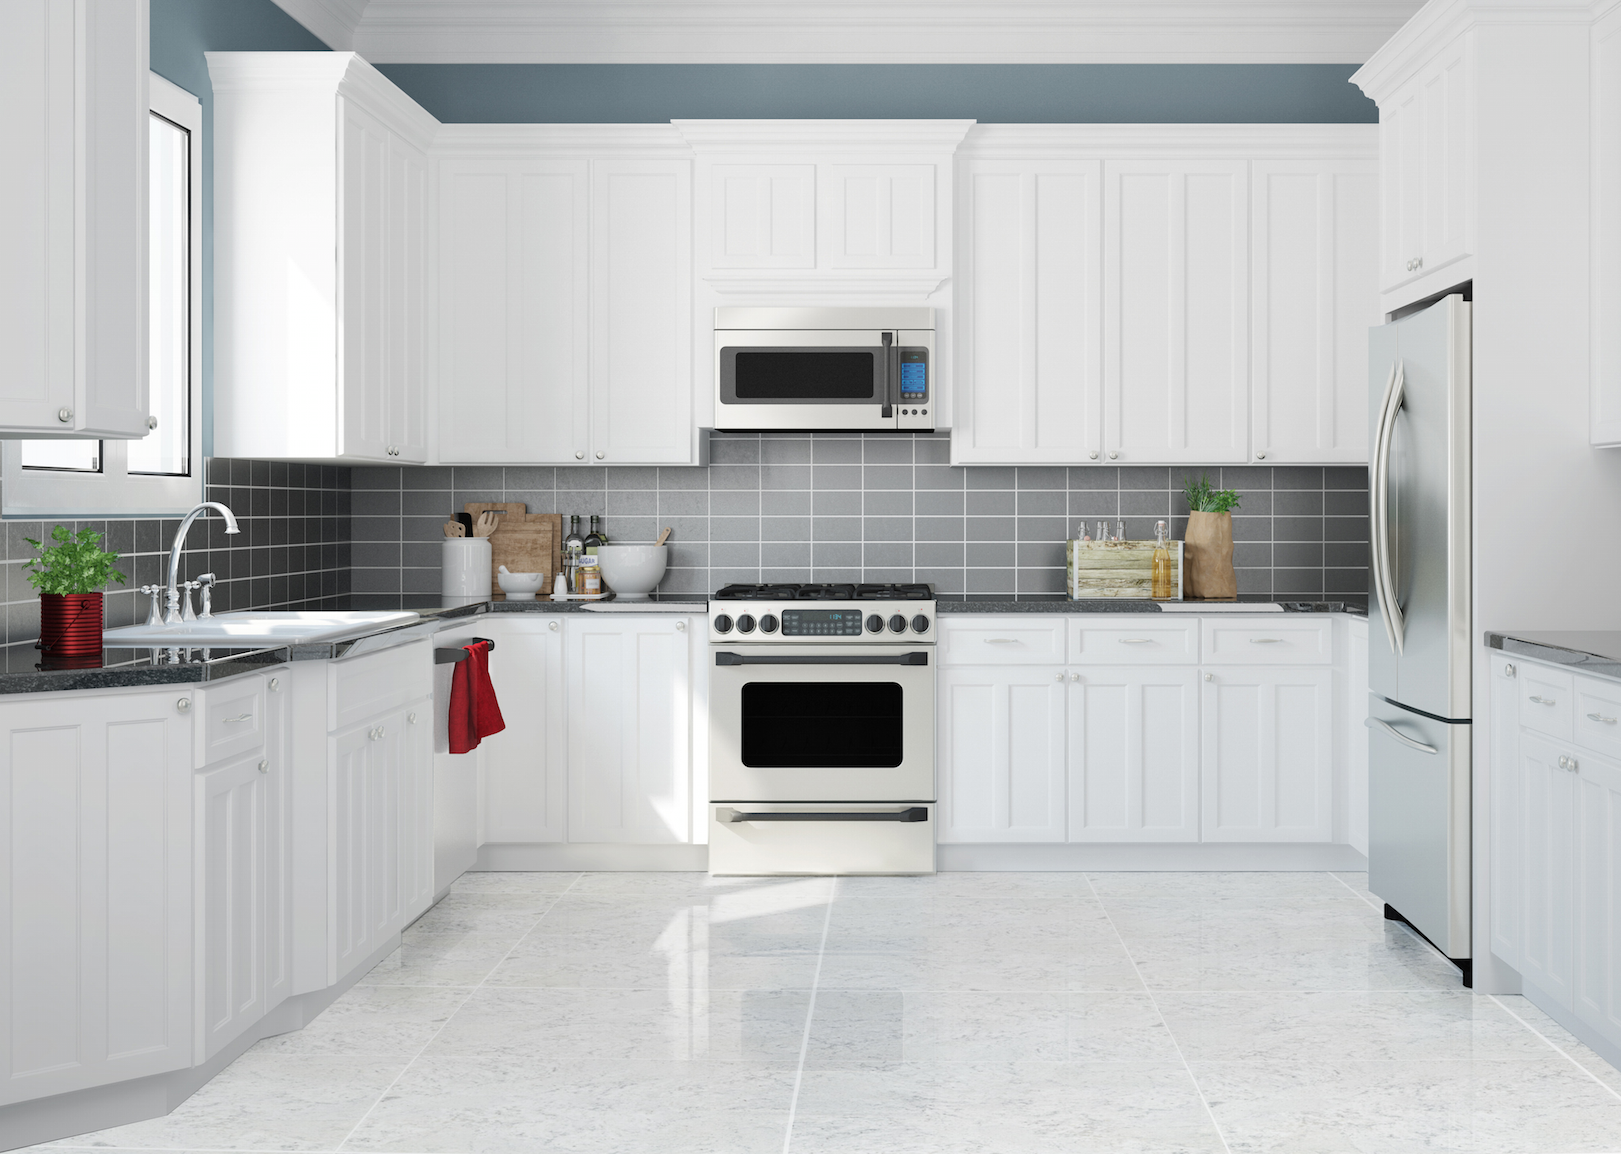 Piso alpone 55.5 x 55.5 cm blanco | Kitchens